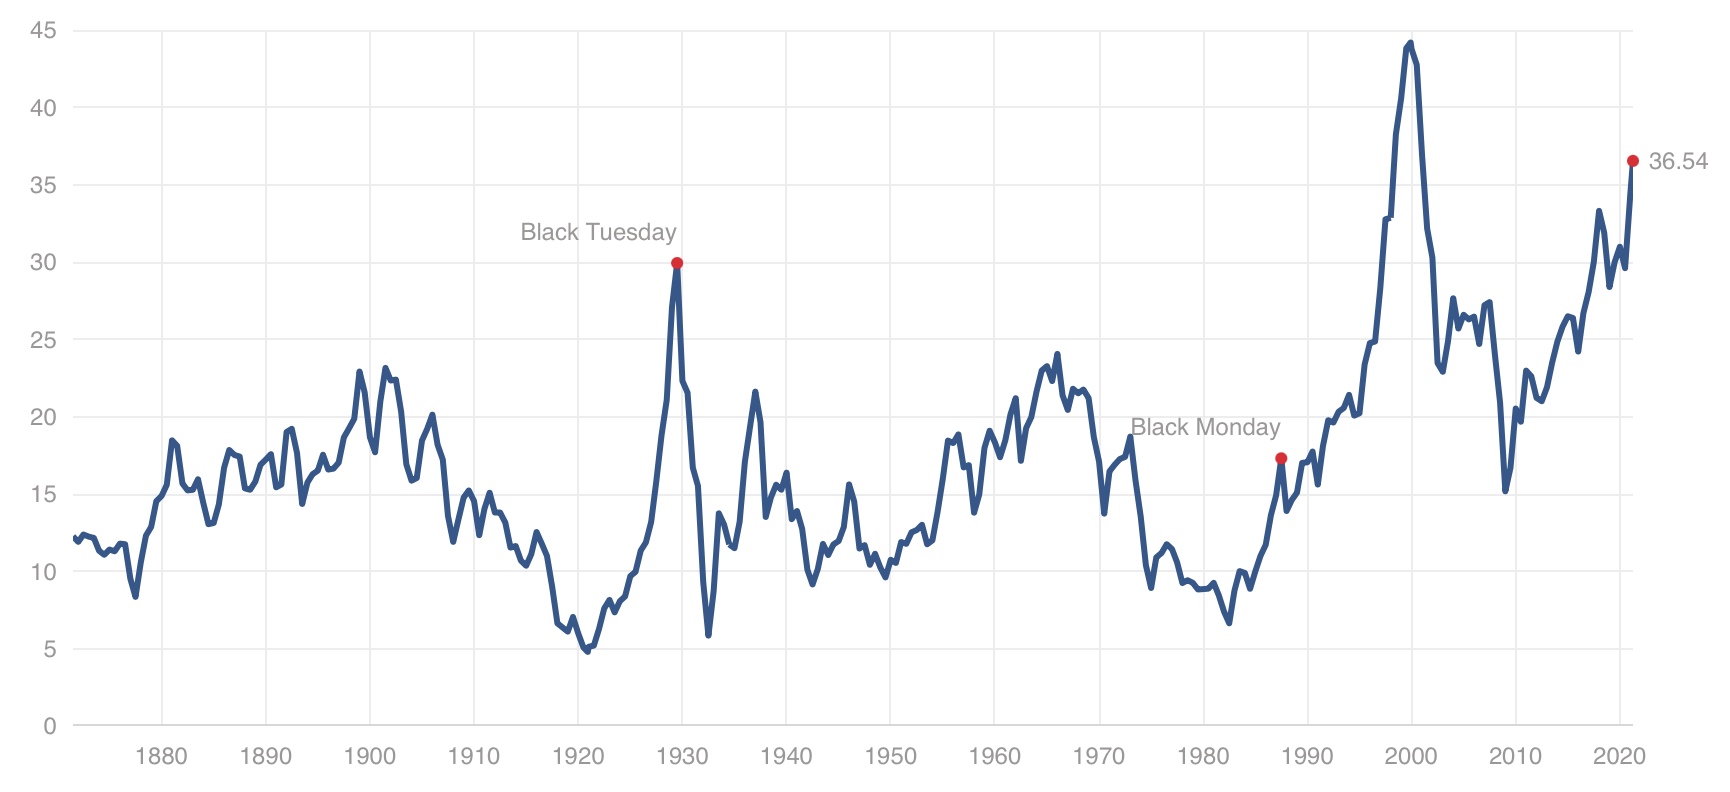 Shiller PE Ratio 2021 04 05